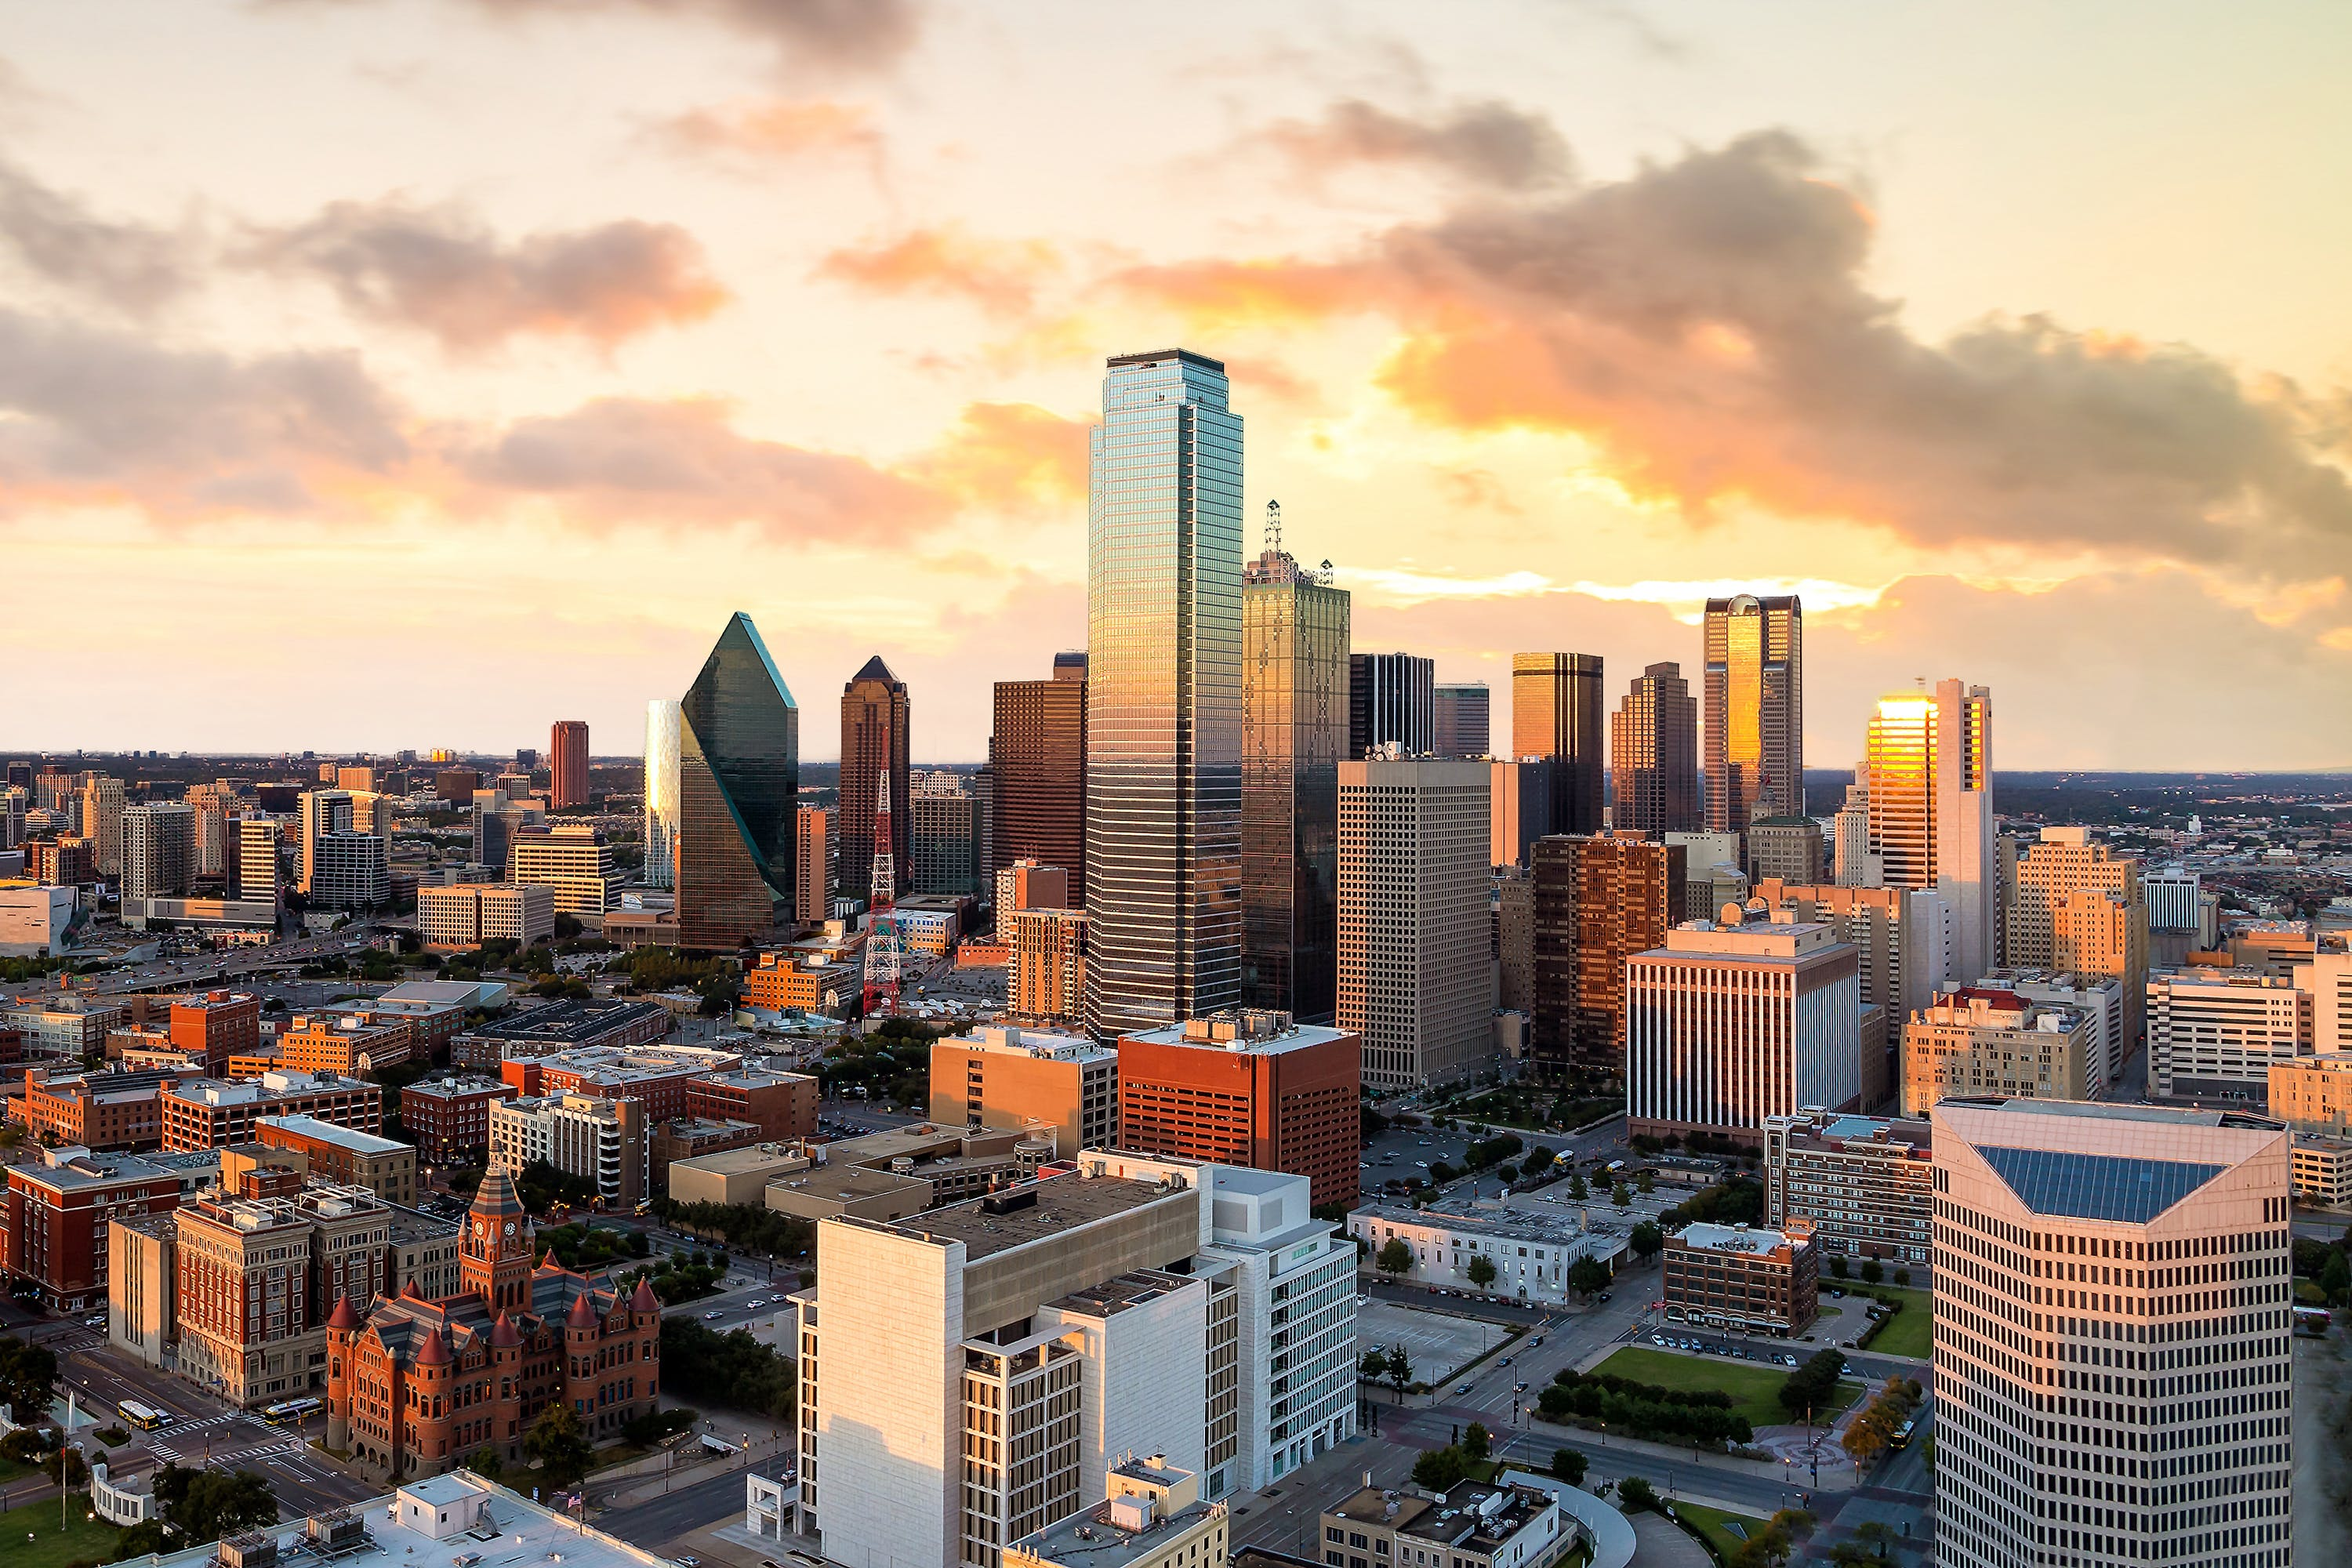 sunset helicopter ride dallas date night ideas